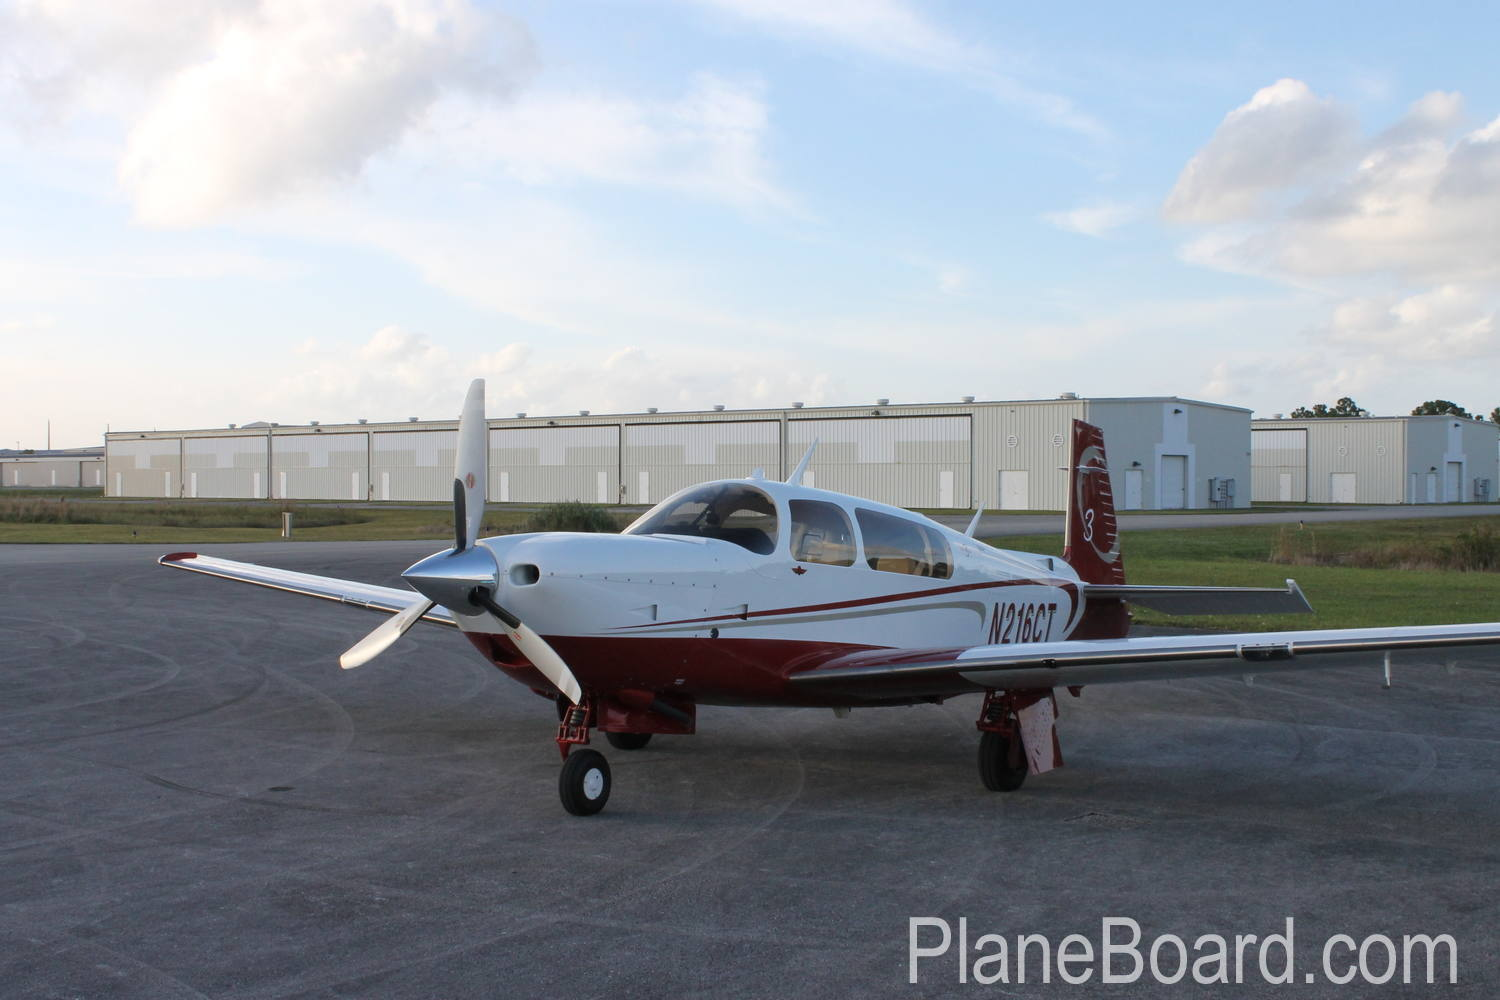 2008 Mooney M20R Ovation3 GX exterior 0